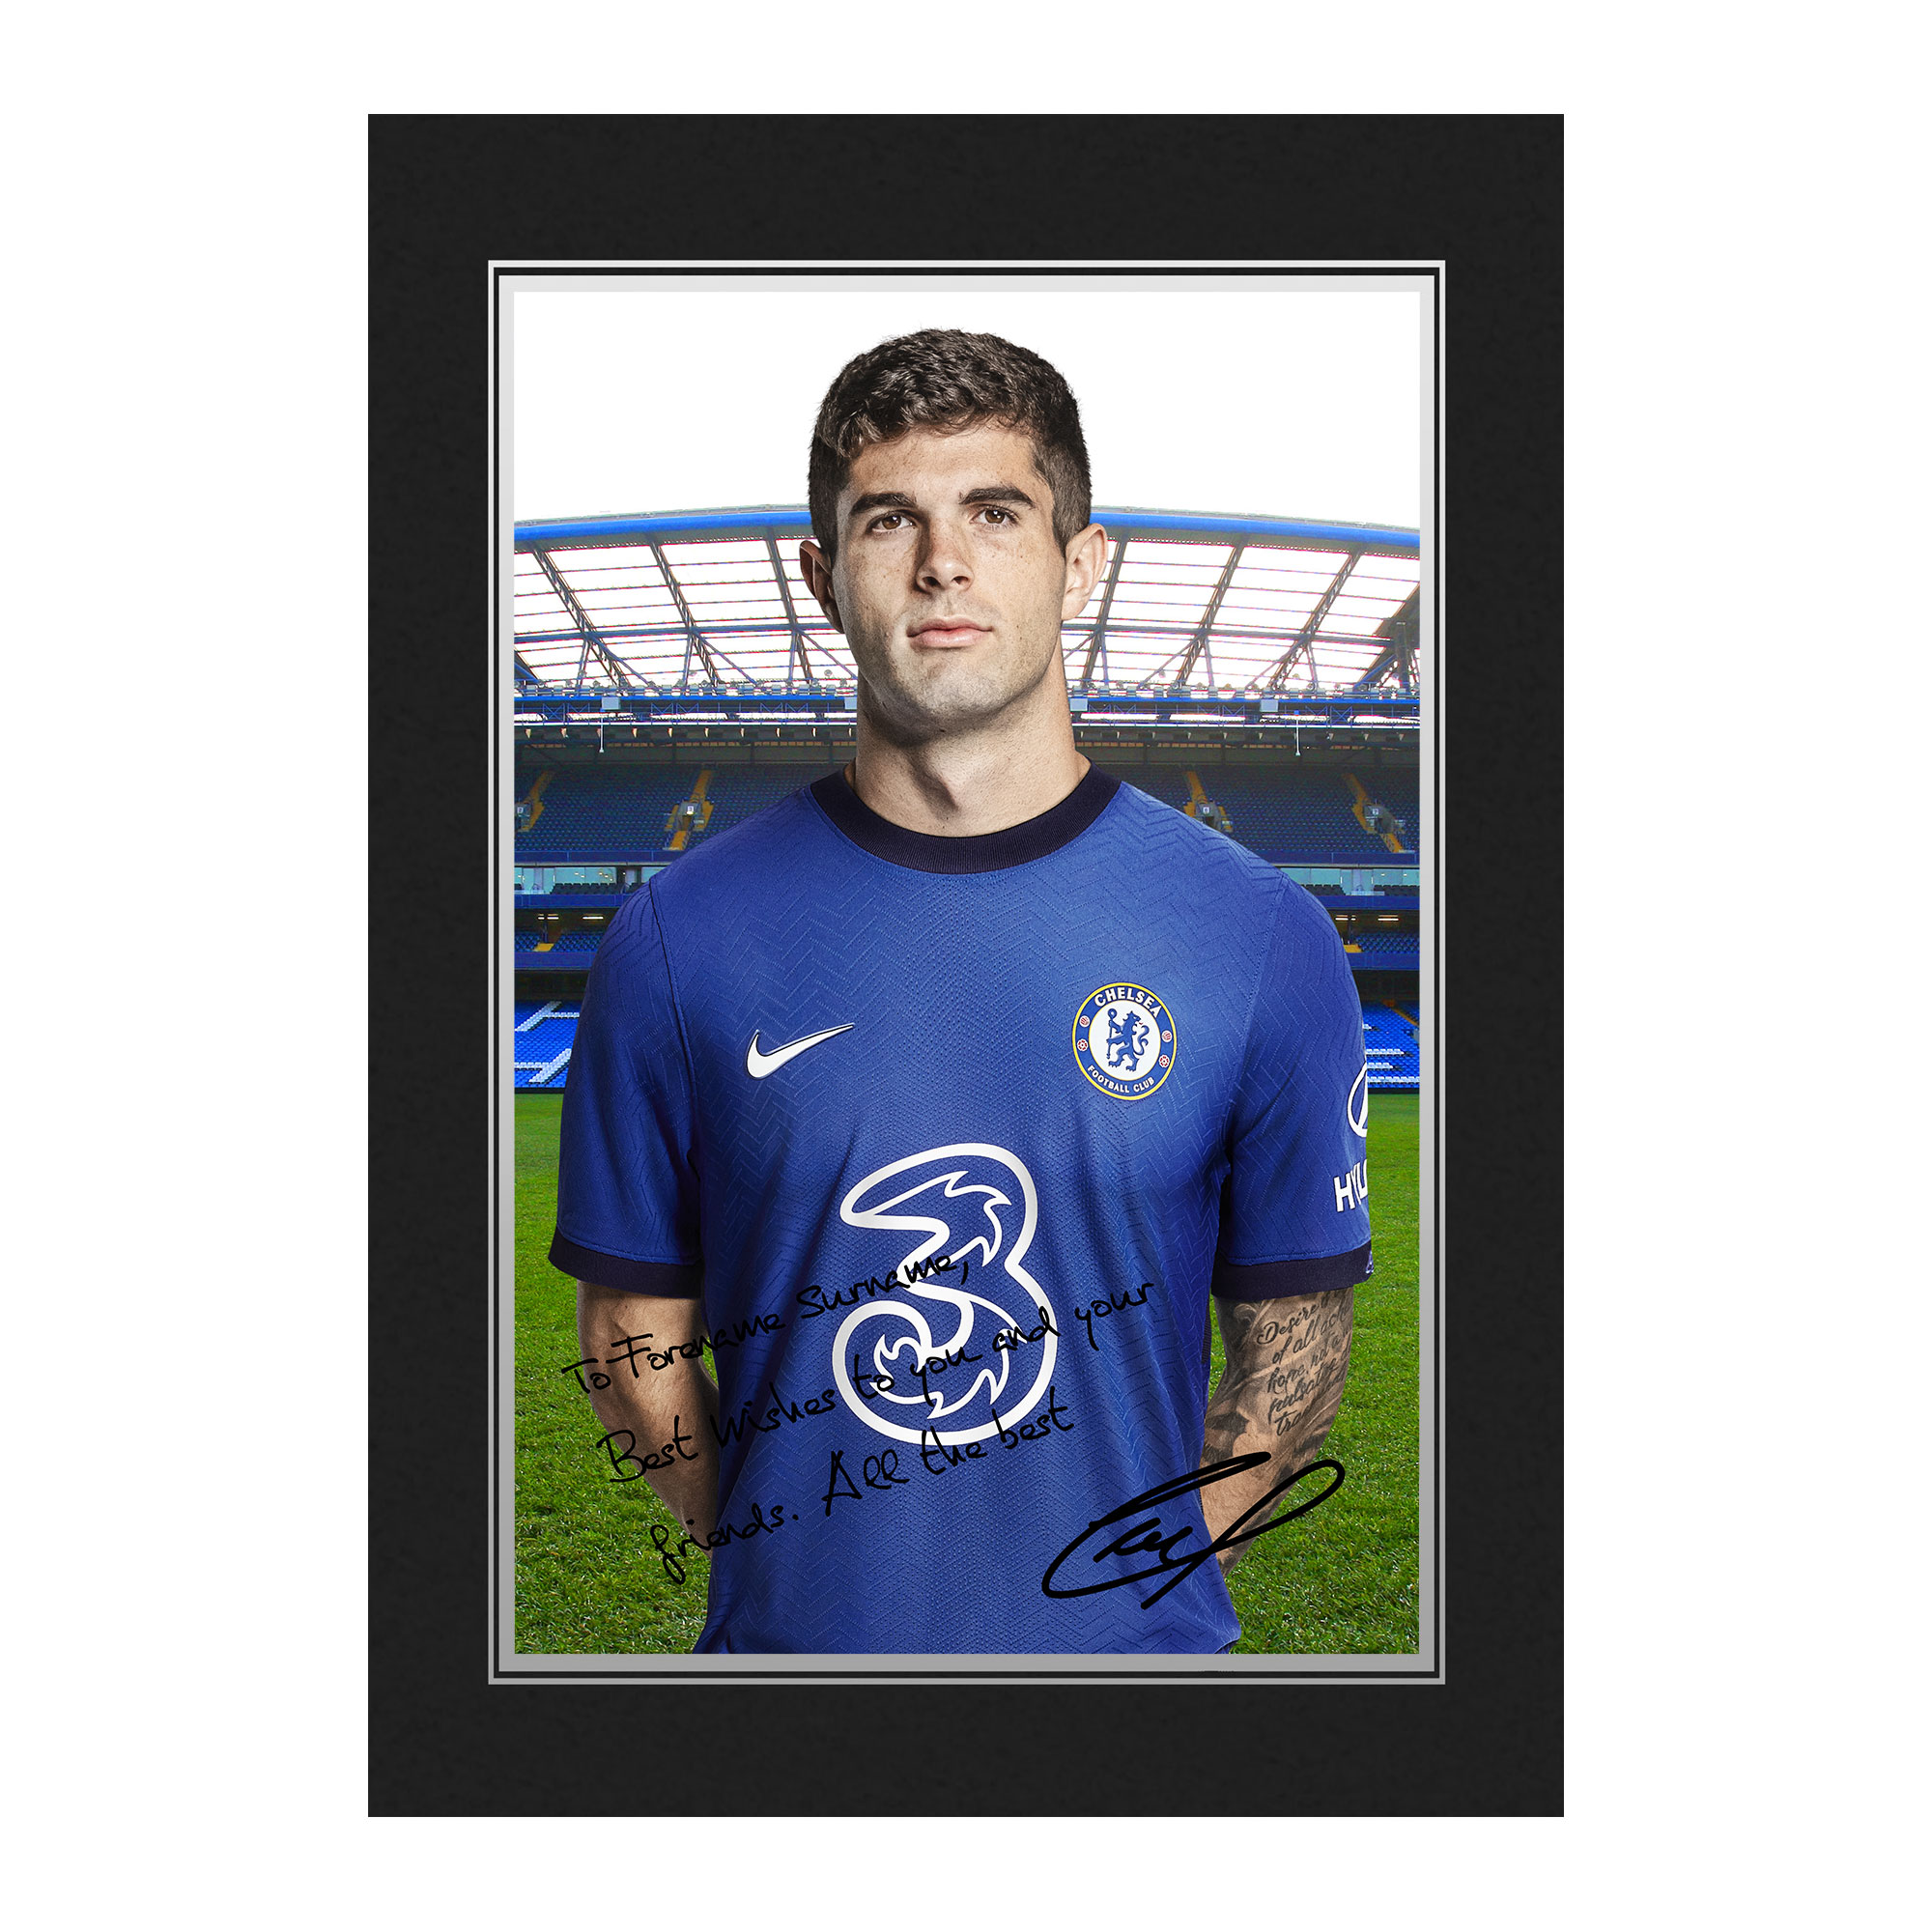 Chelsea FC Pulisic Autograph Photo Folder